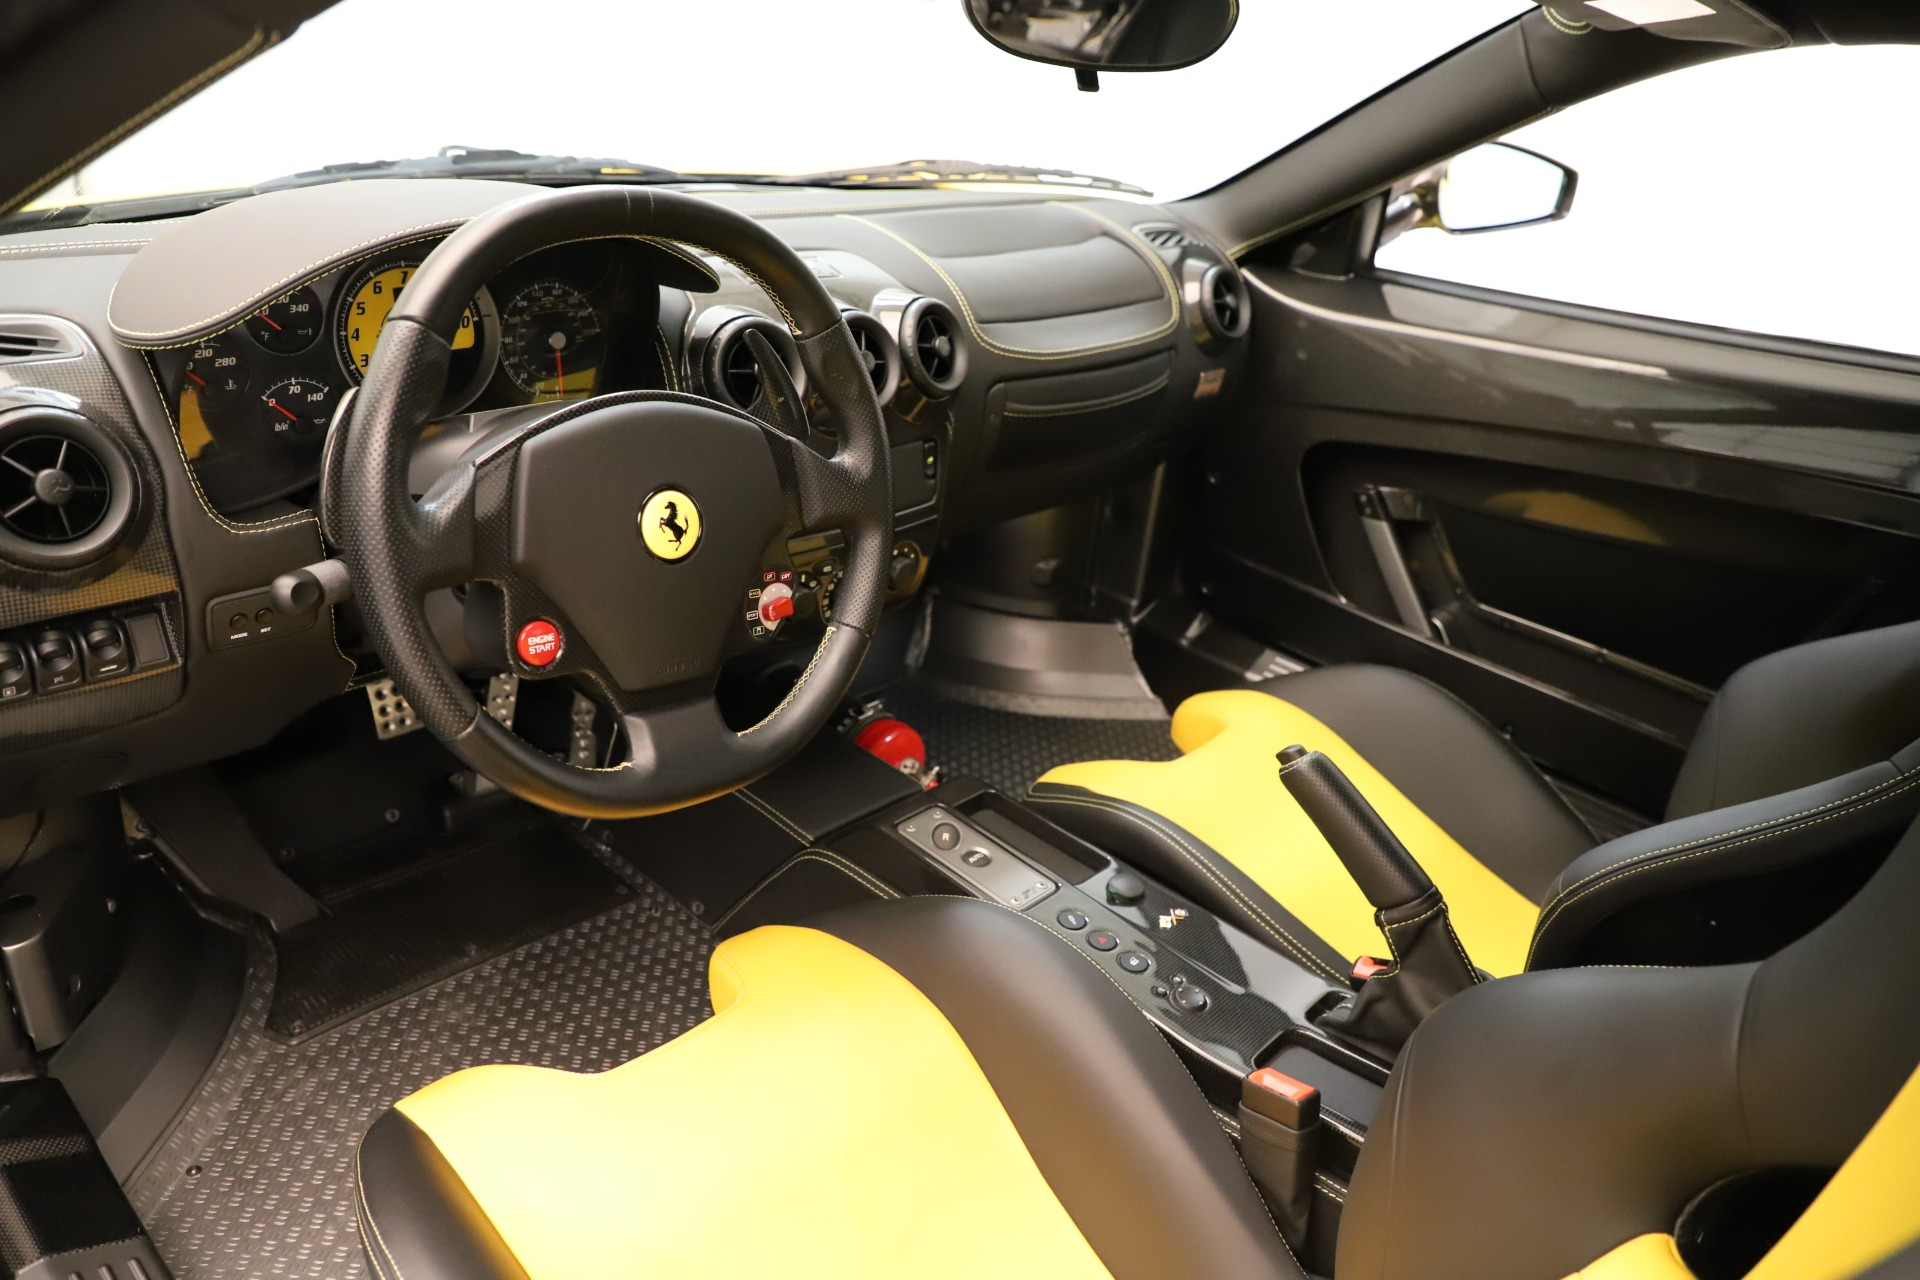 Used 2008 Ferrari F430 Scuderia For Sale In Greenwich, CT 3319_p13